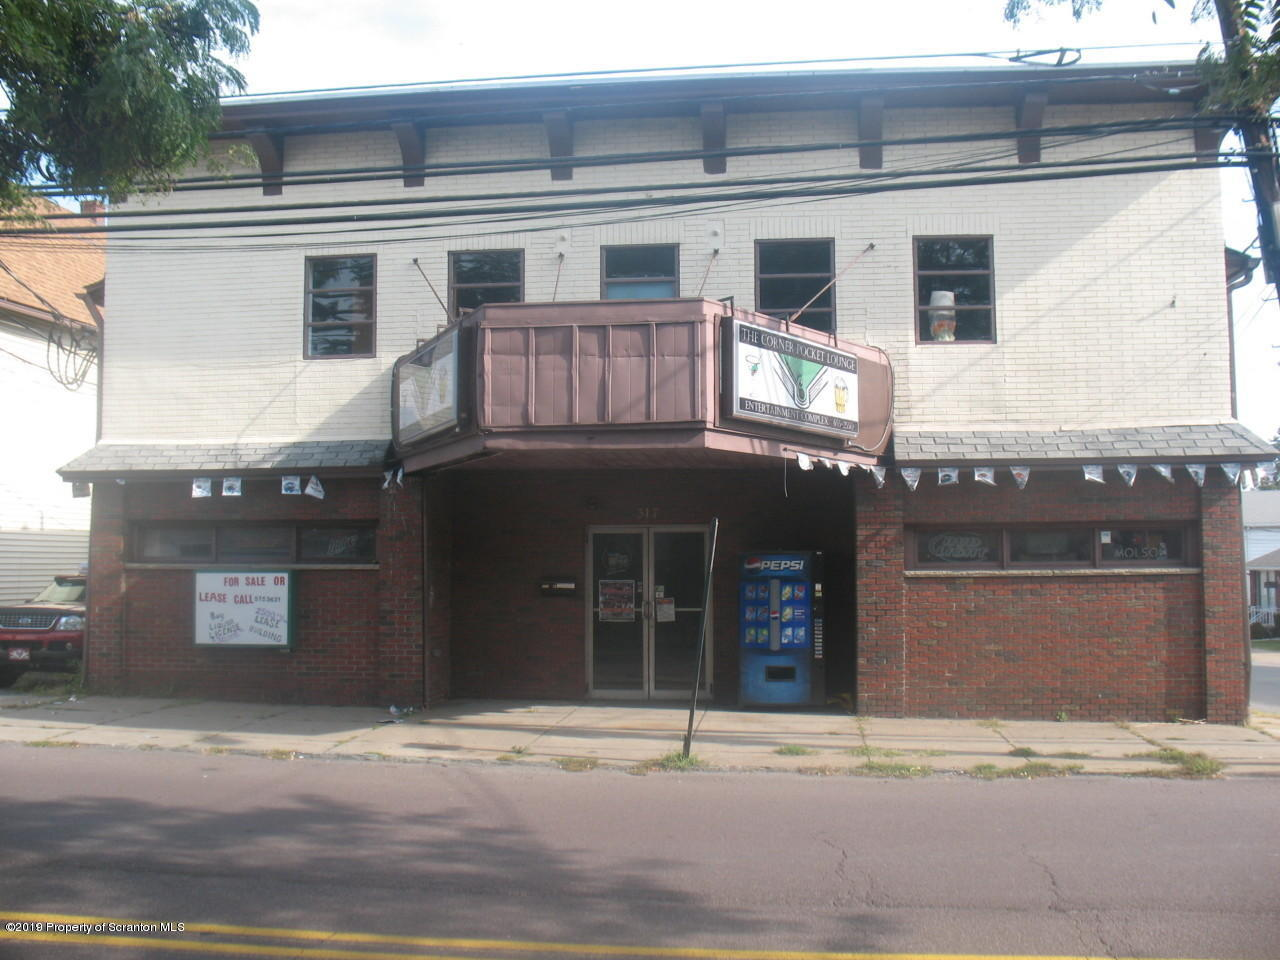 317 Main St, Dupont, Pennsylvania 18641, ,2 BathroomsBathrooms,Commercial,For Sale,Main St,19-1183